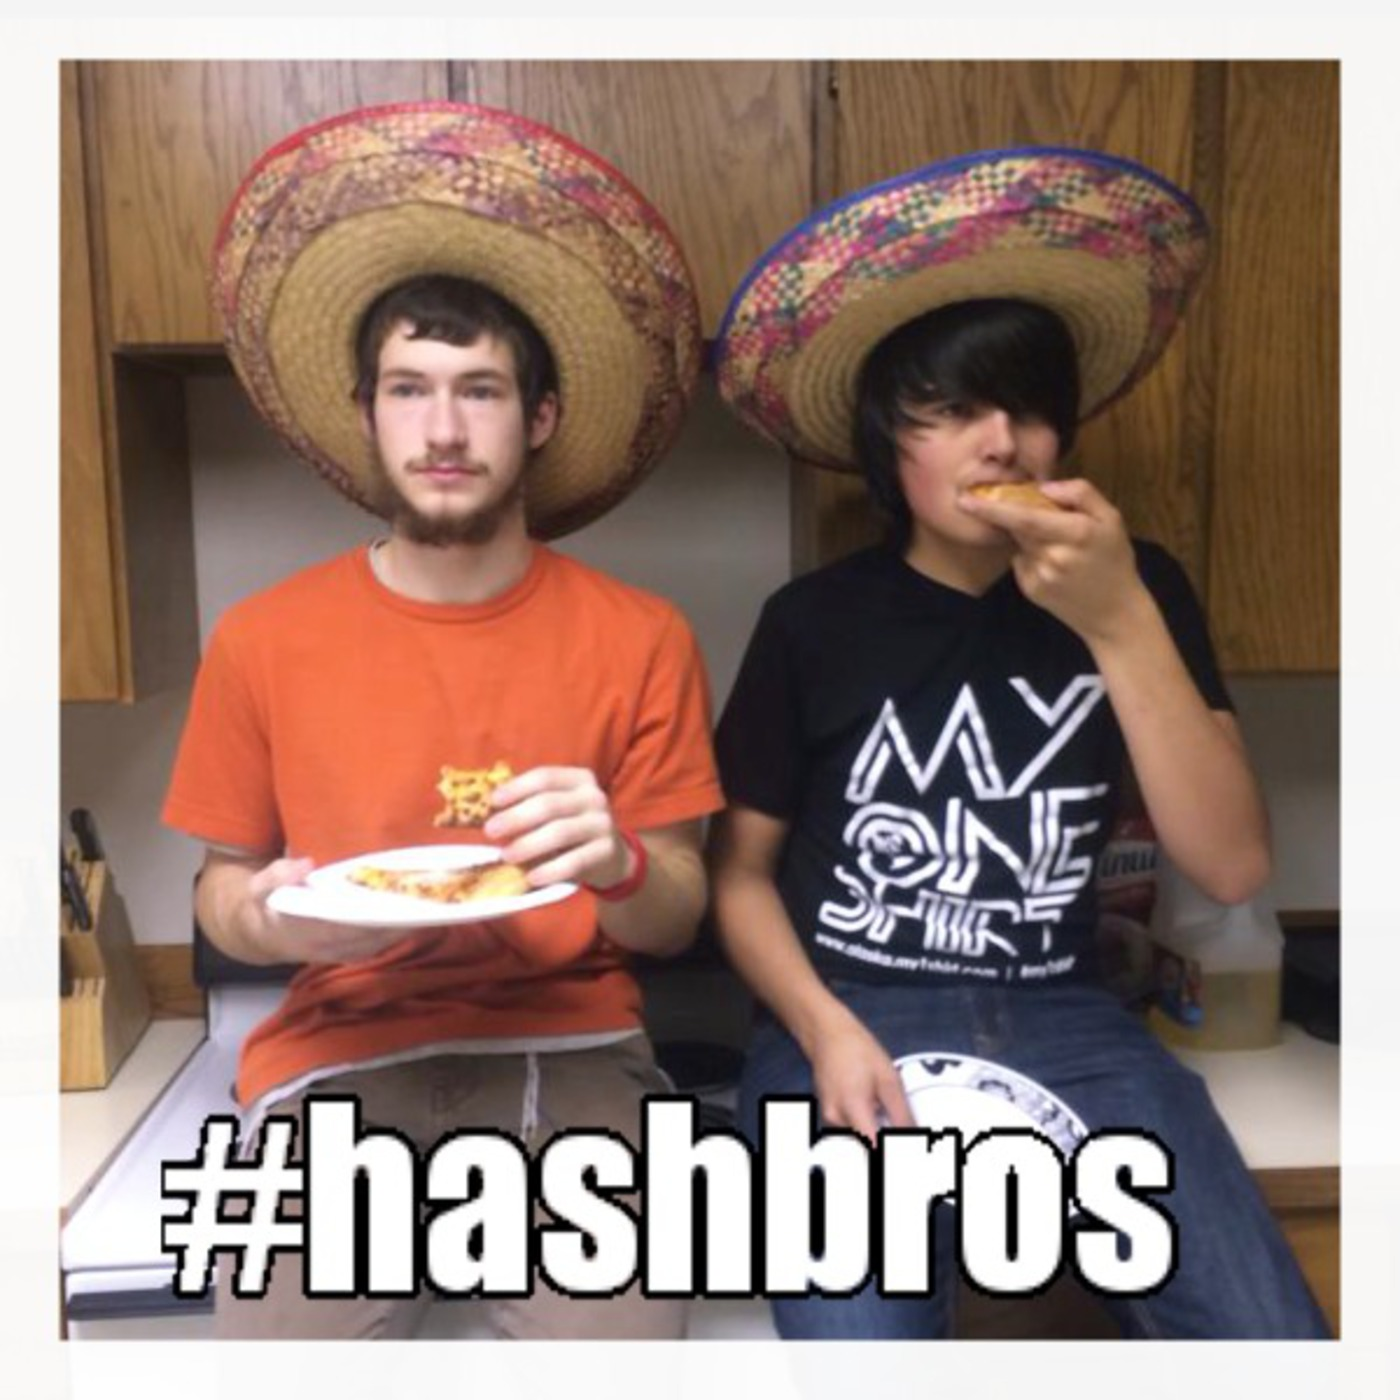 #hashbros' Podcast